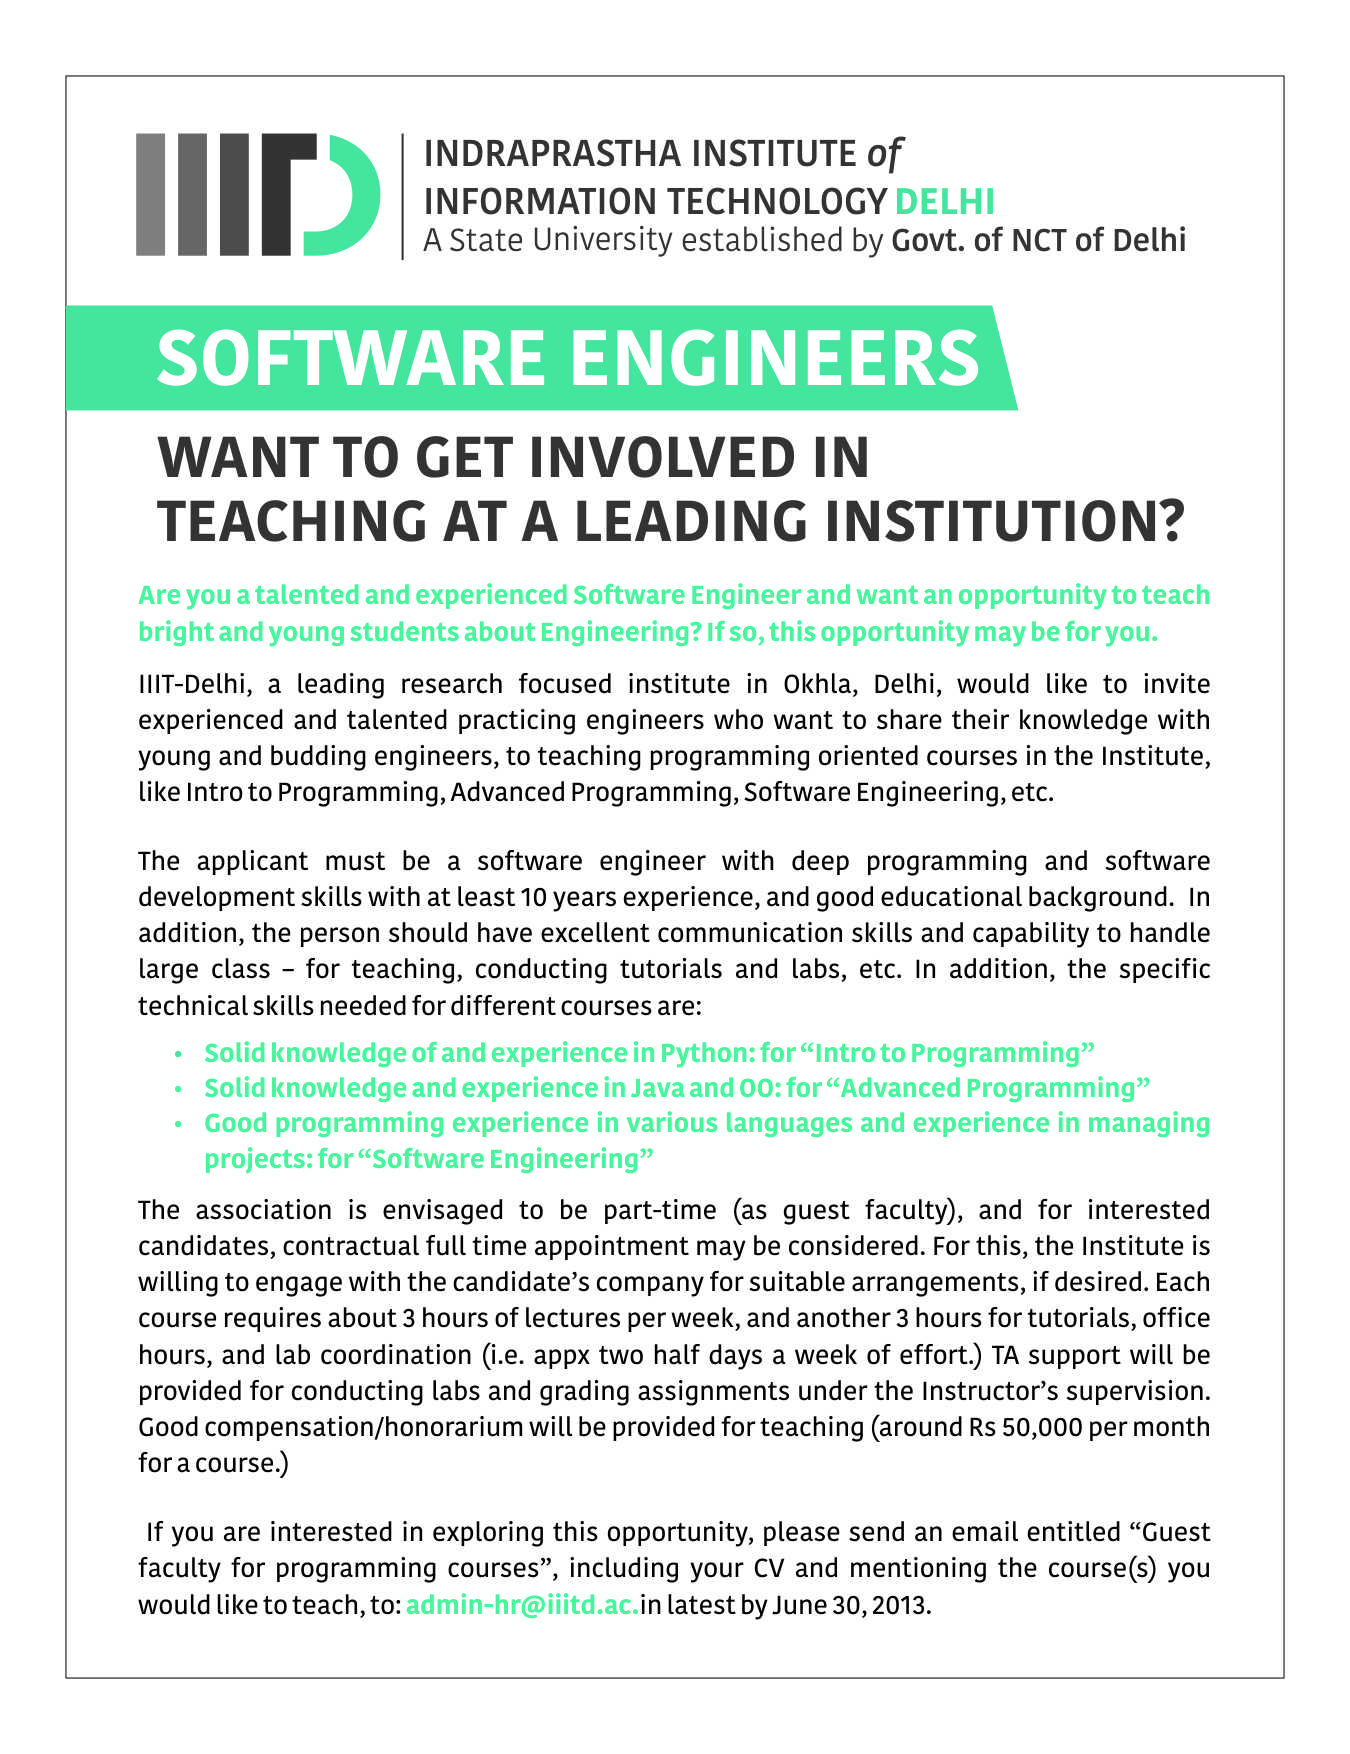 Software Engineers Want To Get Involved In Education At